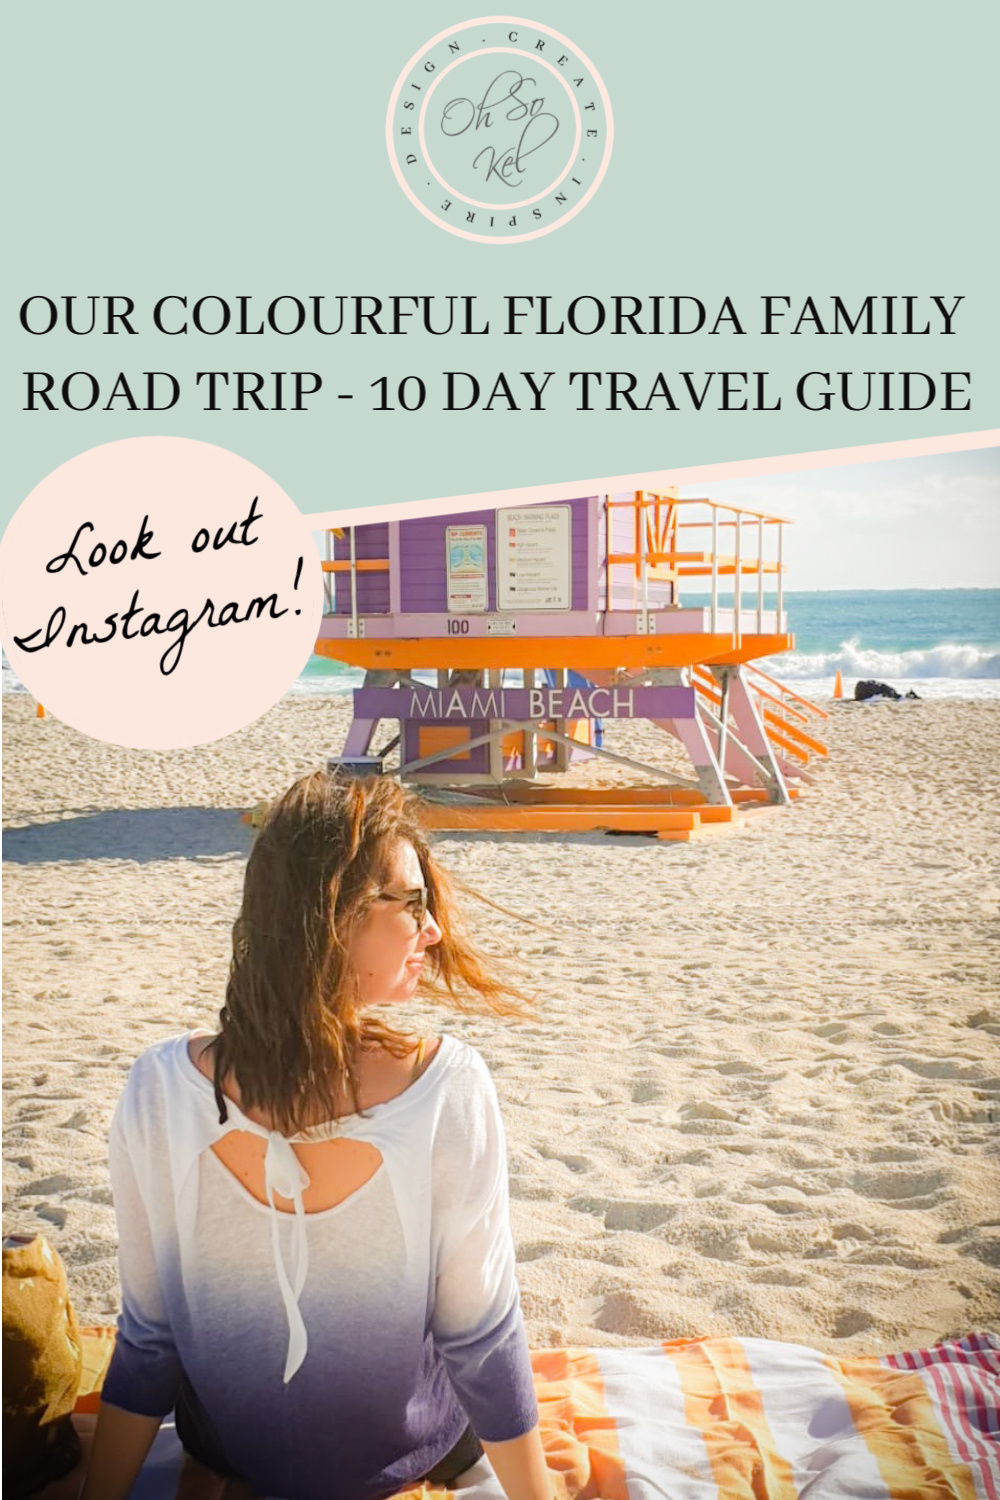 OUR COLOURFUL FLORIDA FAMILY ROAD TRIP - 10 DAY TRAVEL GUIDE